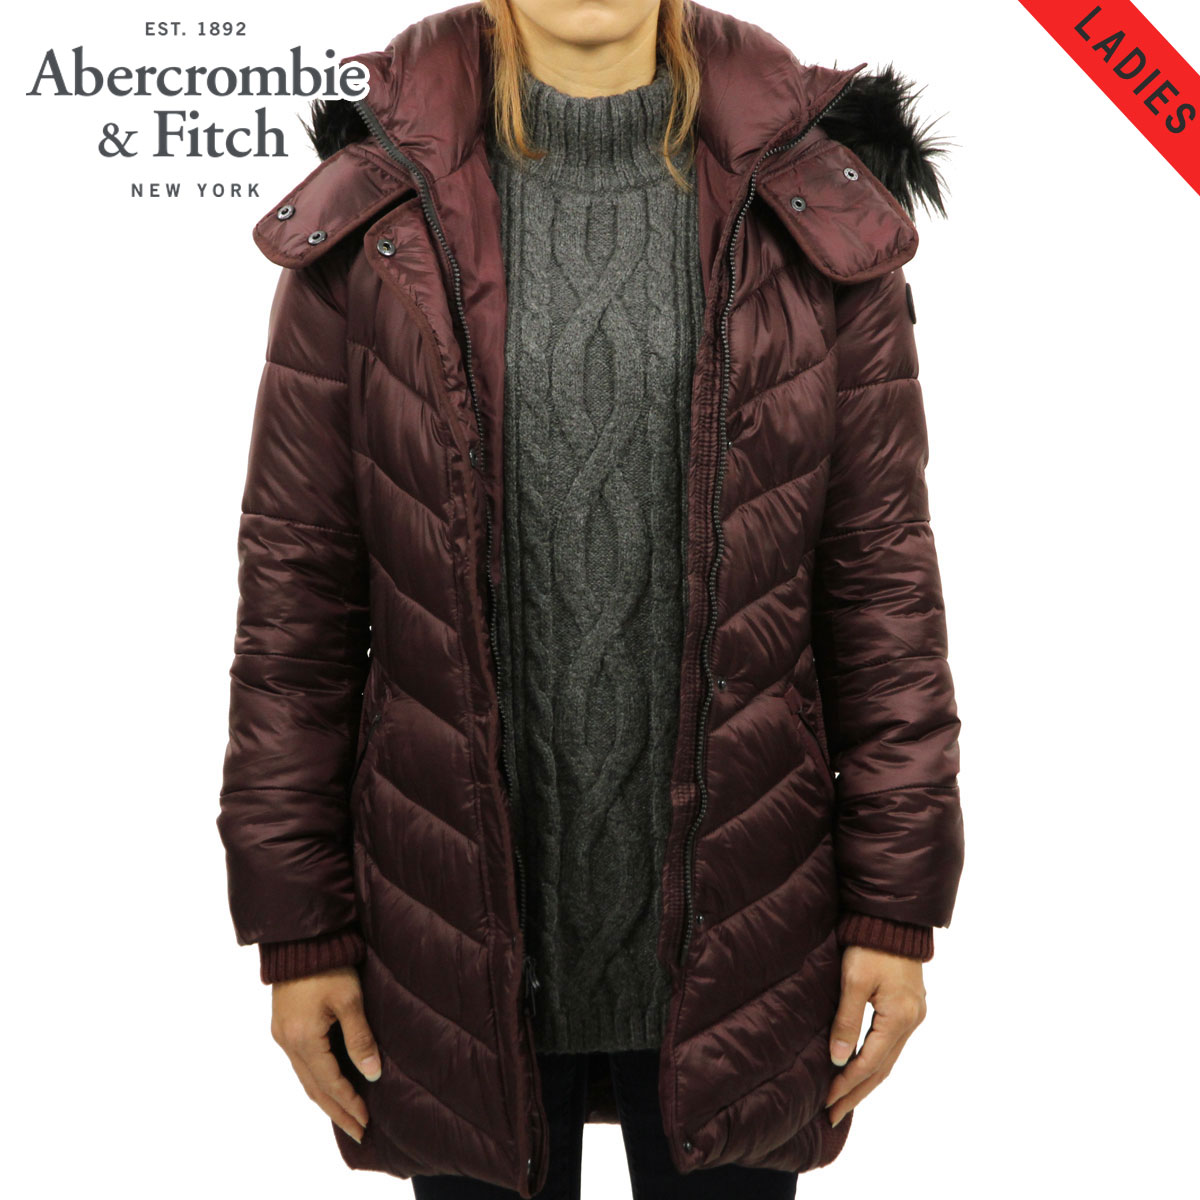 15%OFFセール 【販売期間 12/4 20:00~12/11 1:59】 アバクロ Abercrombie&Fitch 正規品 レディース アウター QUILTED NYLON PARKA 144-442-0503-500 D00S20